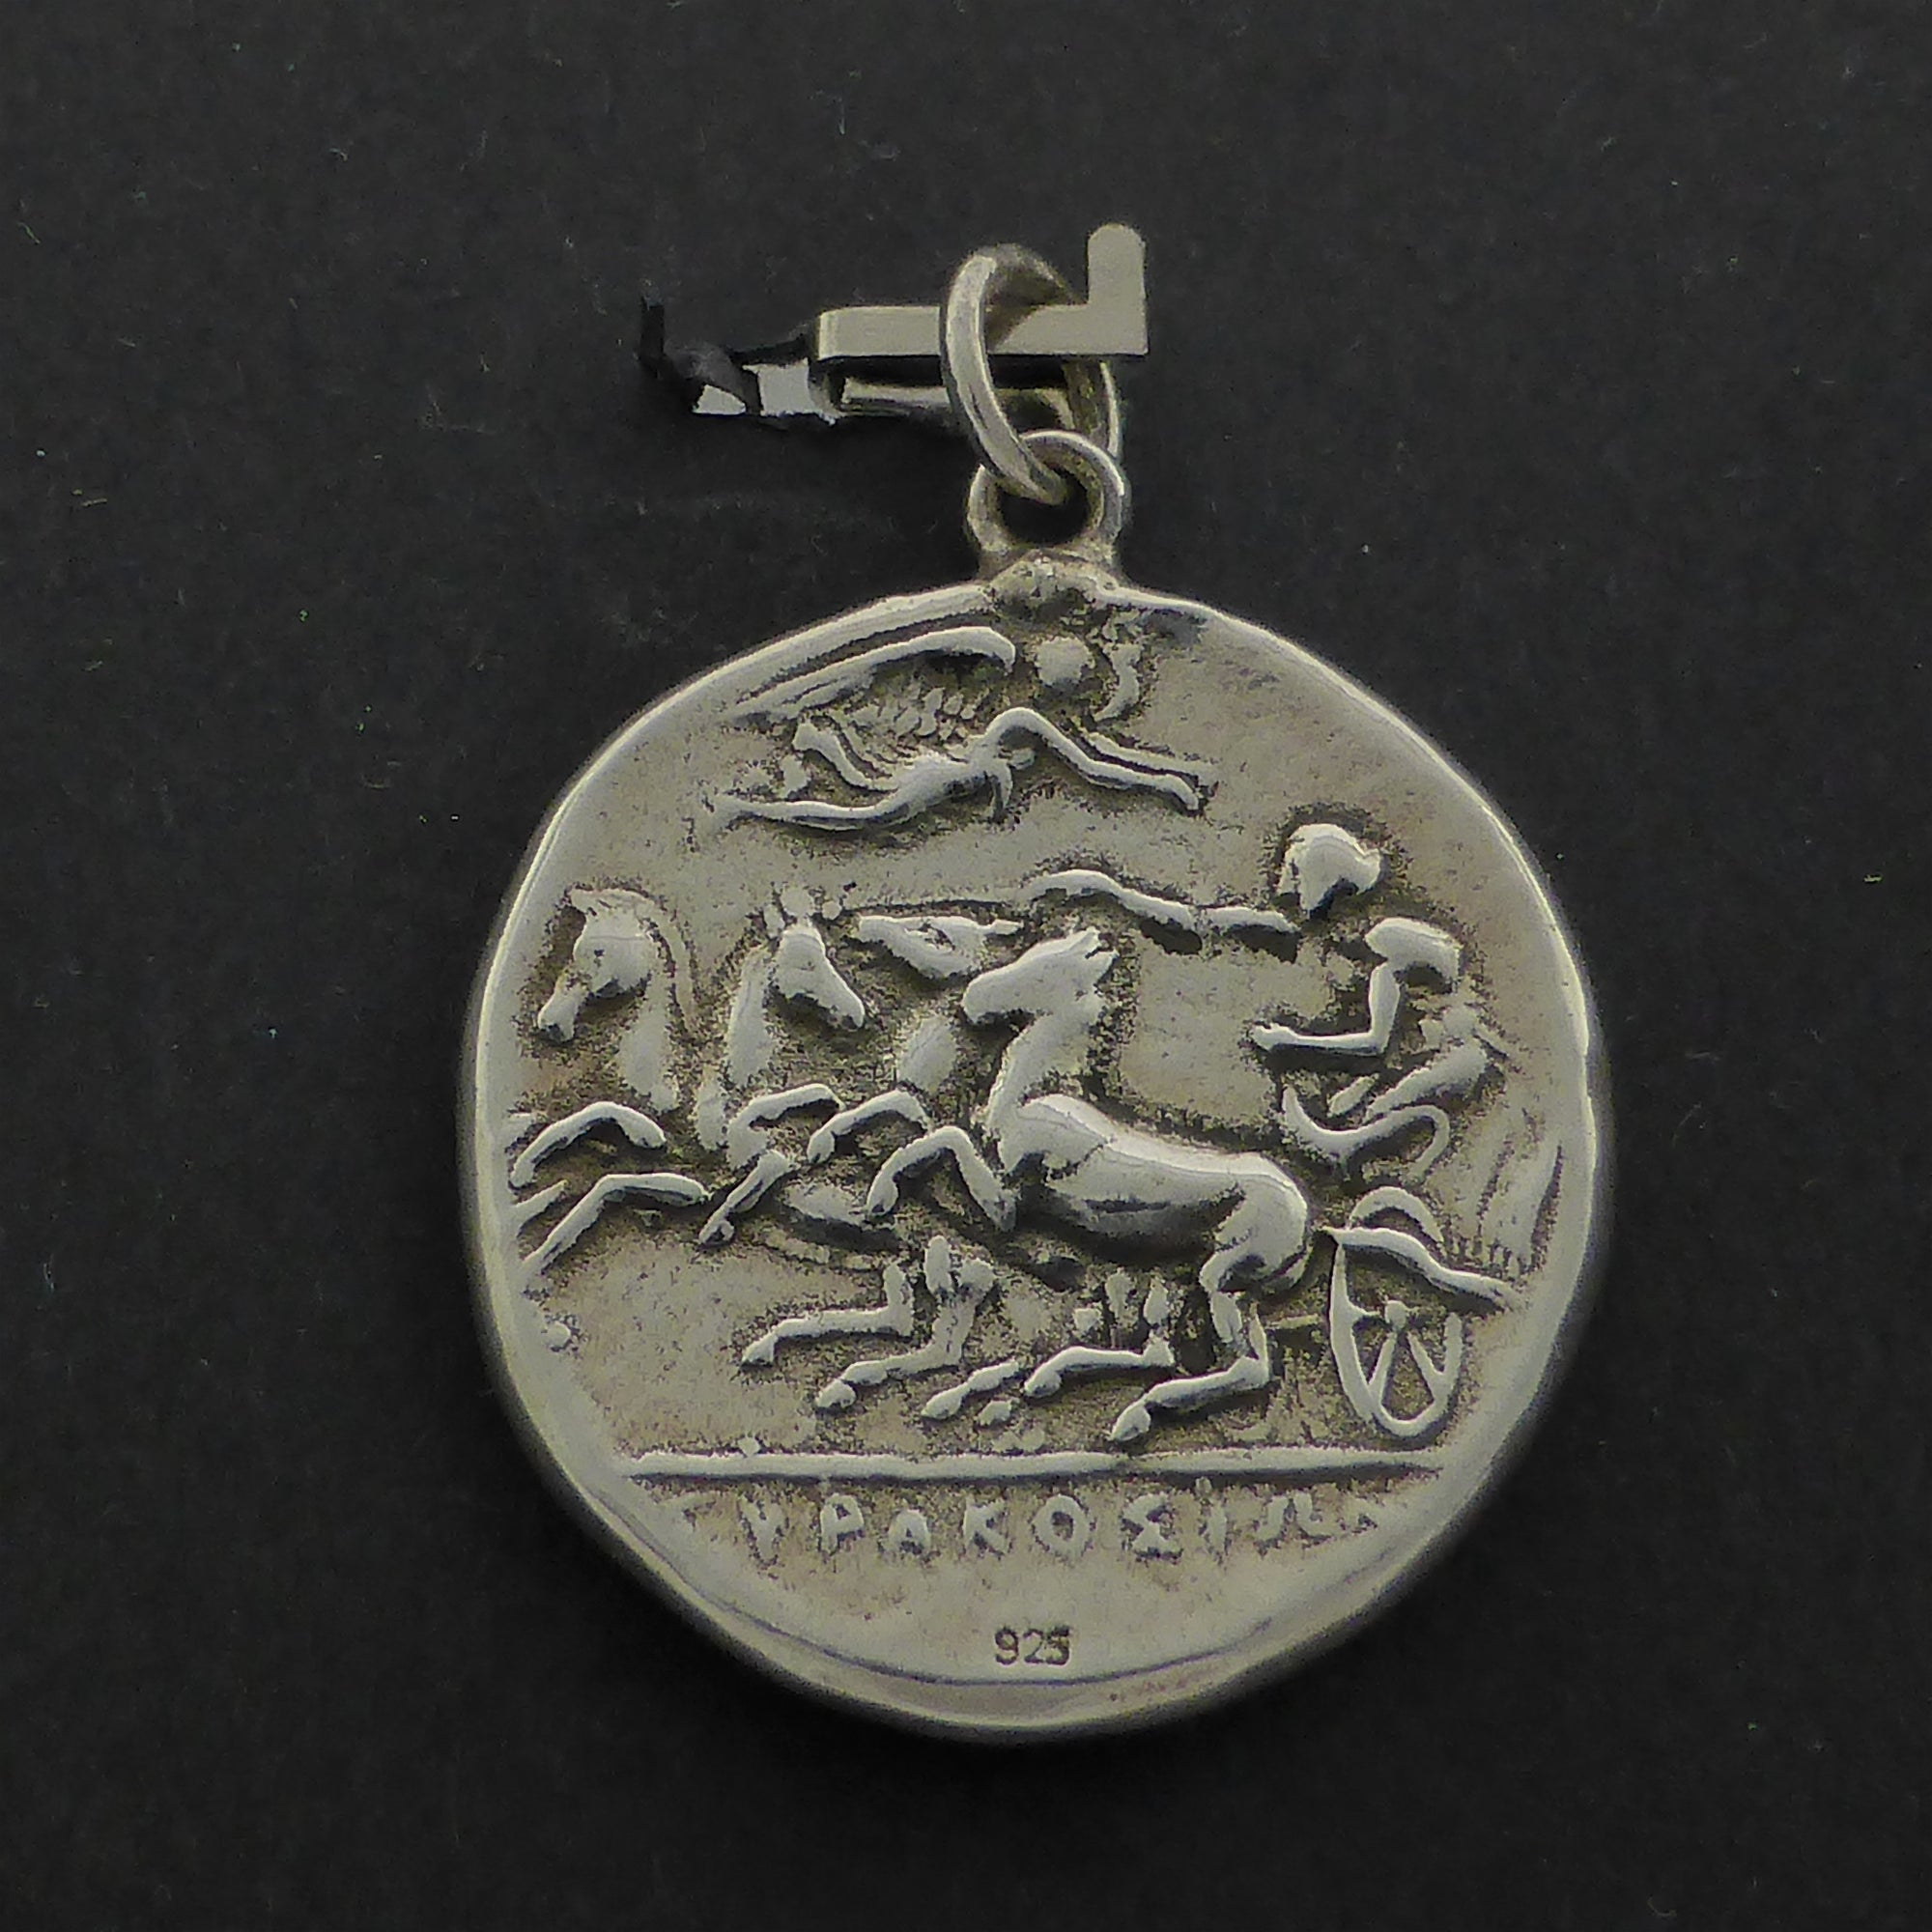 marsh jewelry coin son nanaimo large chain image pendant greek view gorgeous and